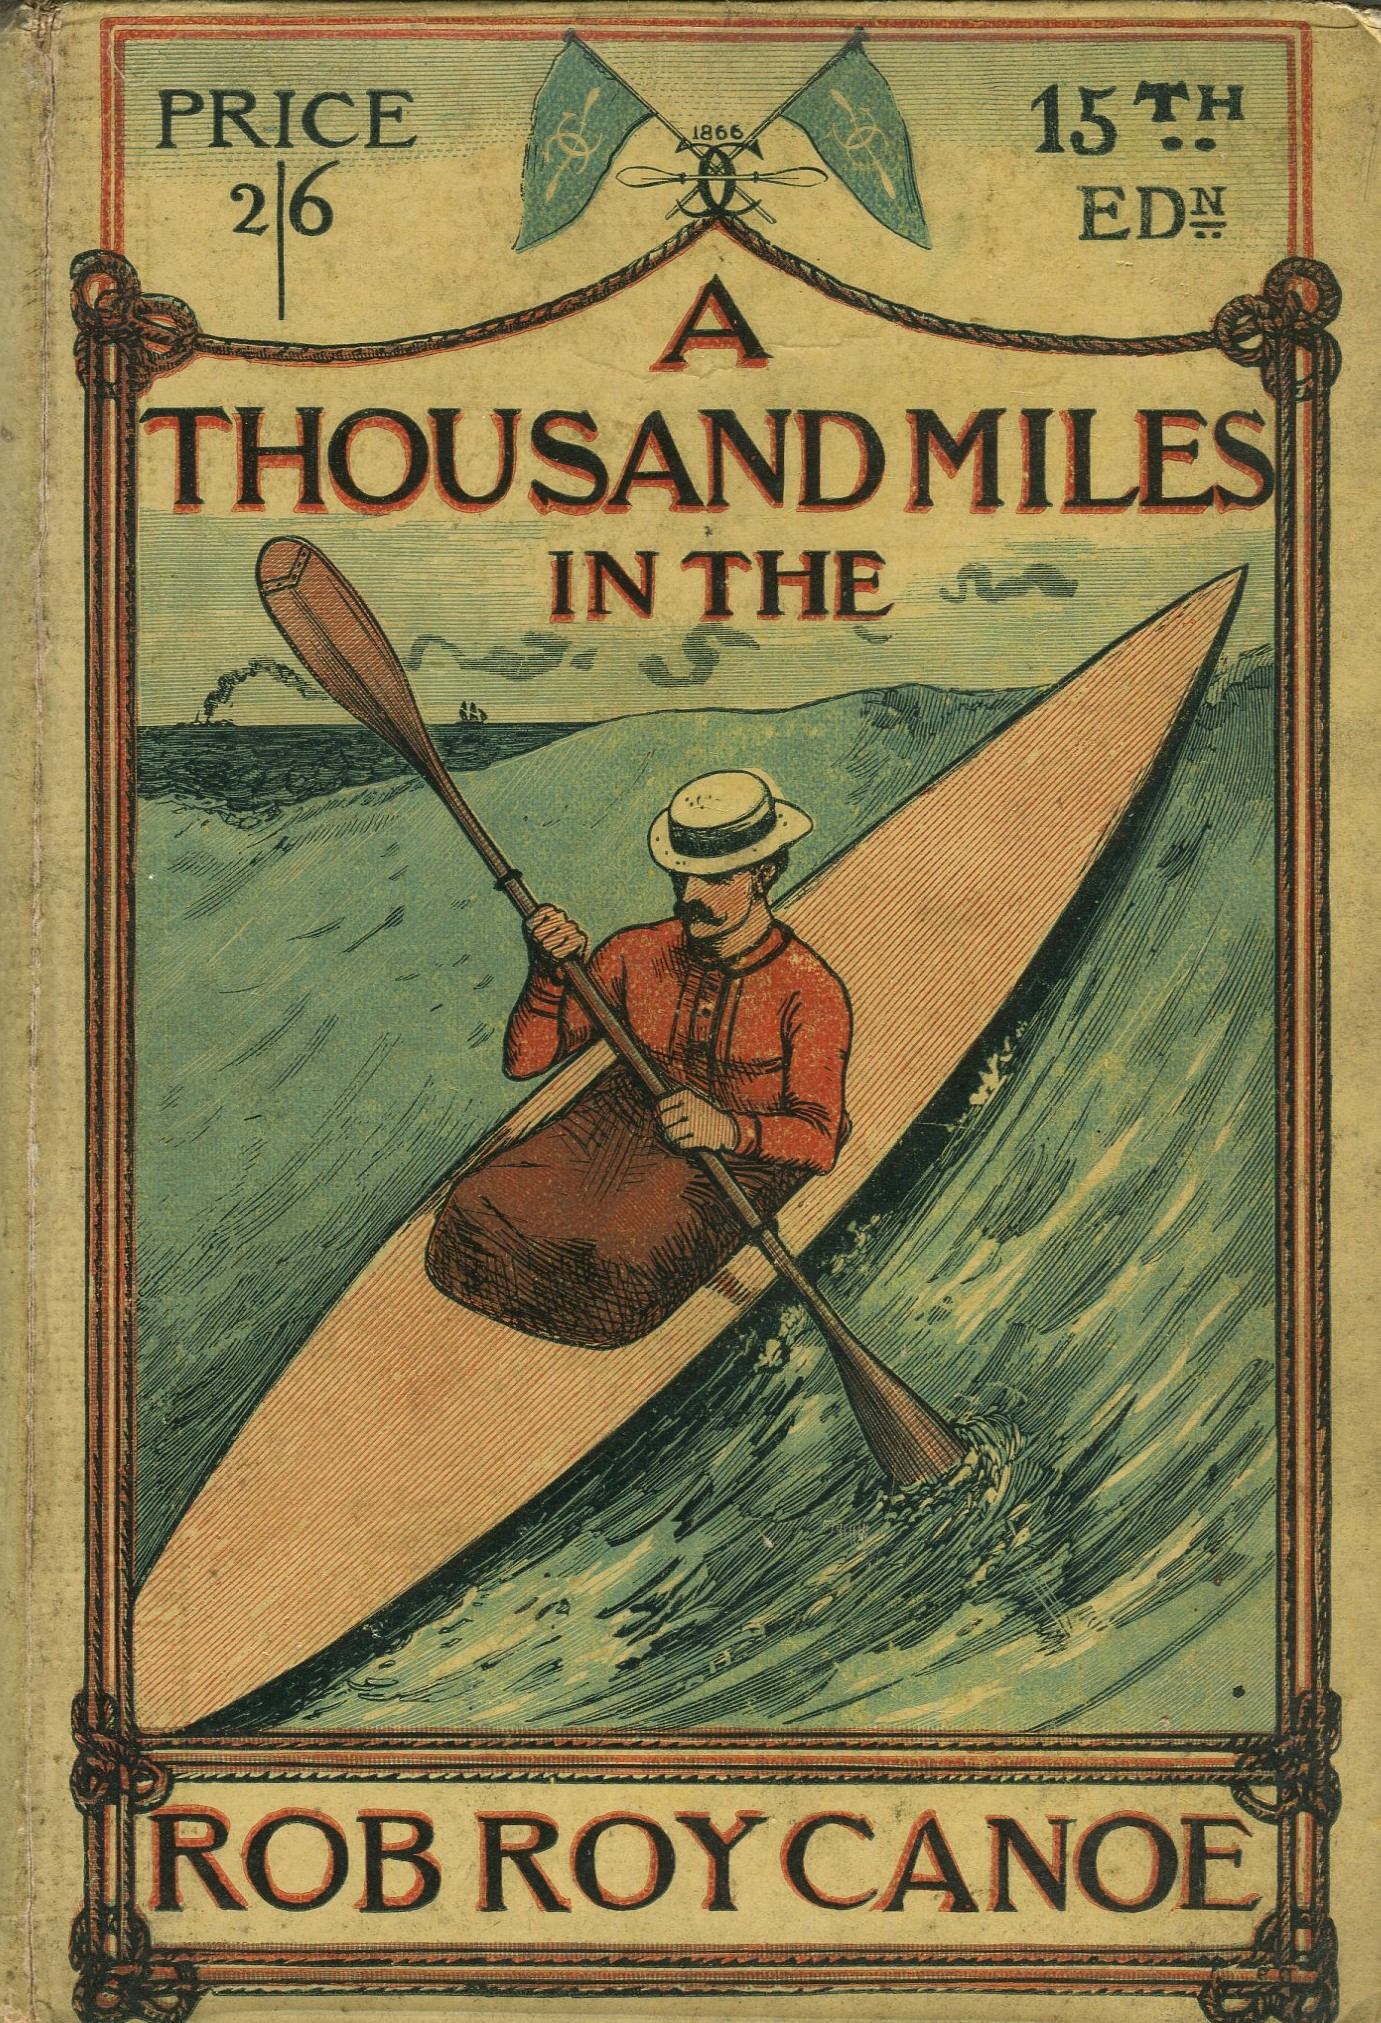 A thousand miles in the Rob Roy Canoe 1885